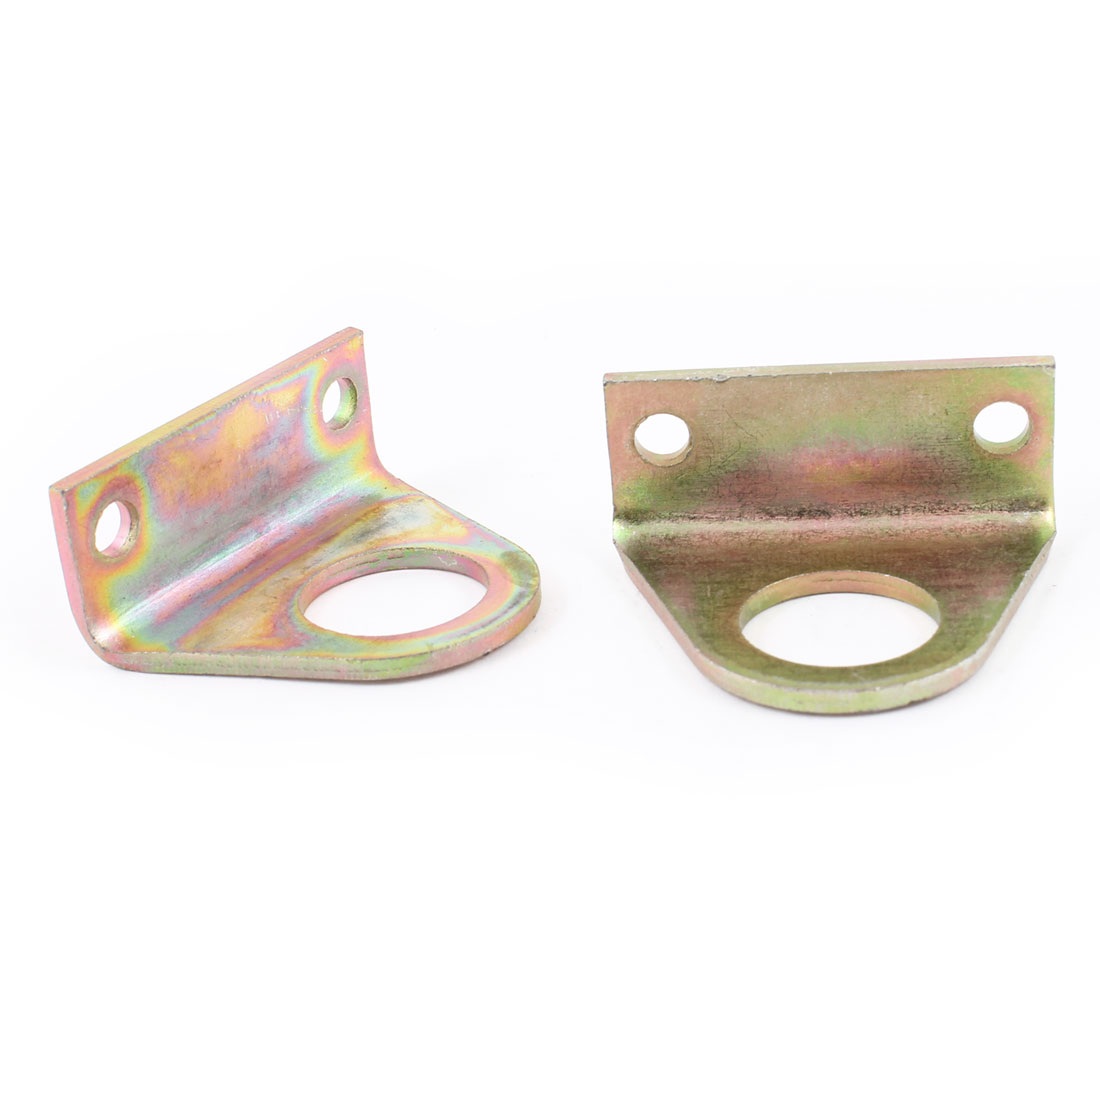 "0.8"" Dia Hole 2"" x 0.8"" x 1.6"" Right Angle Brass Tone Corner Bracket 2 Pcs"